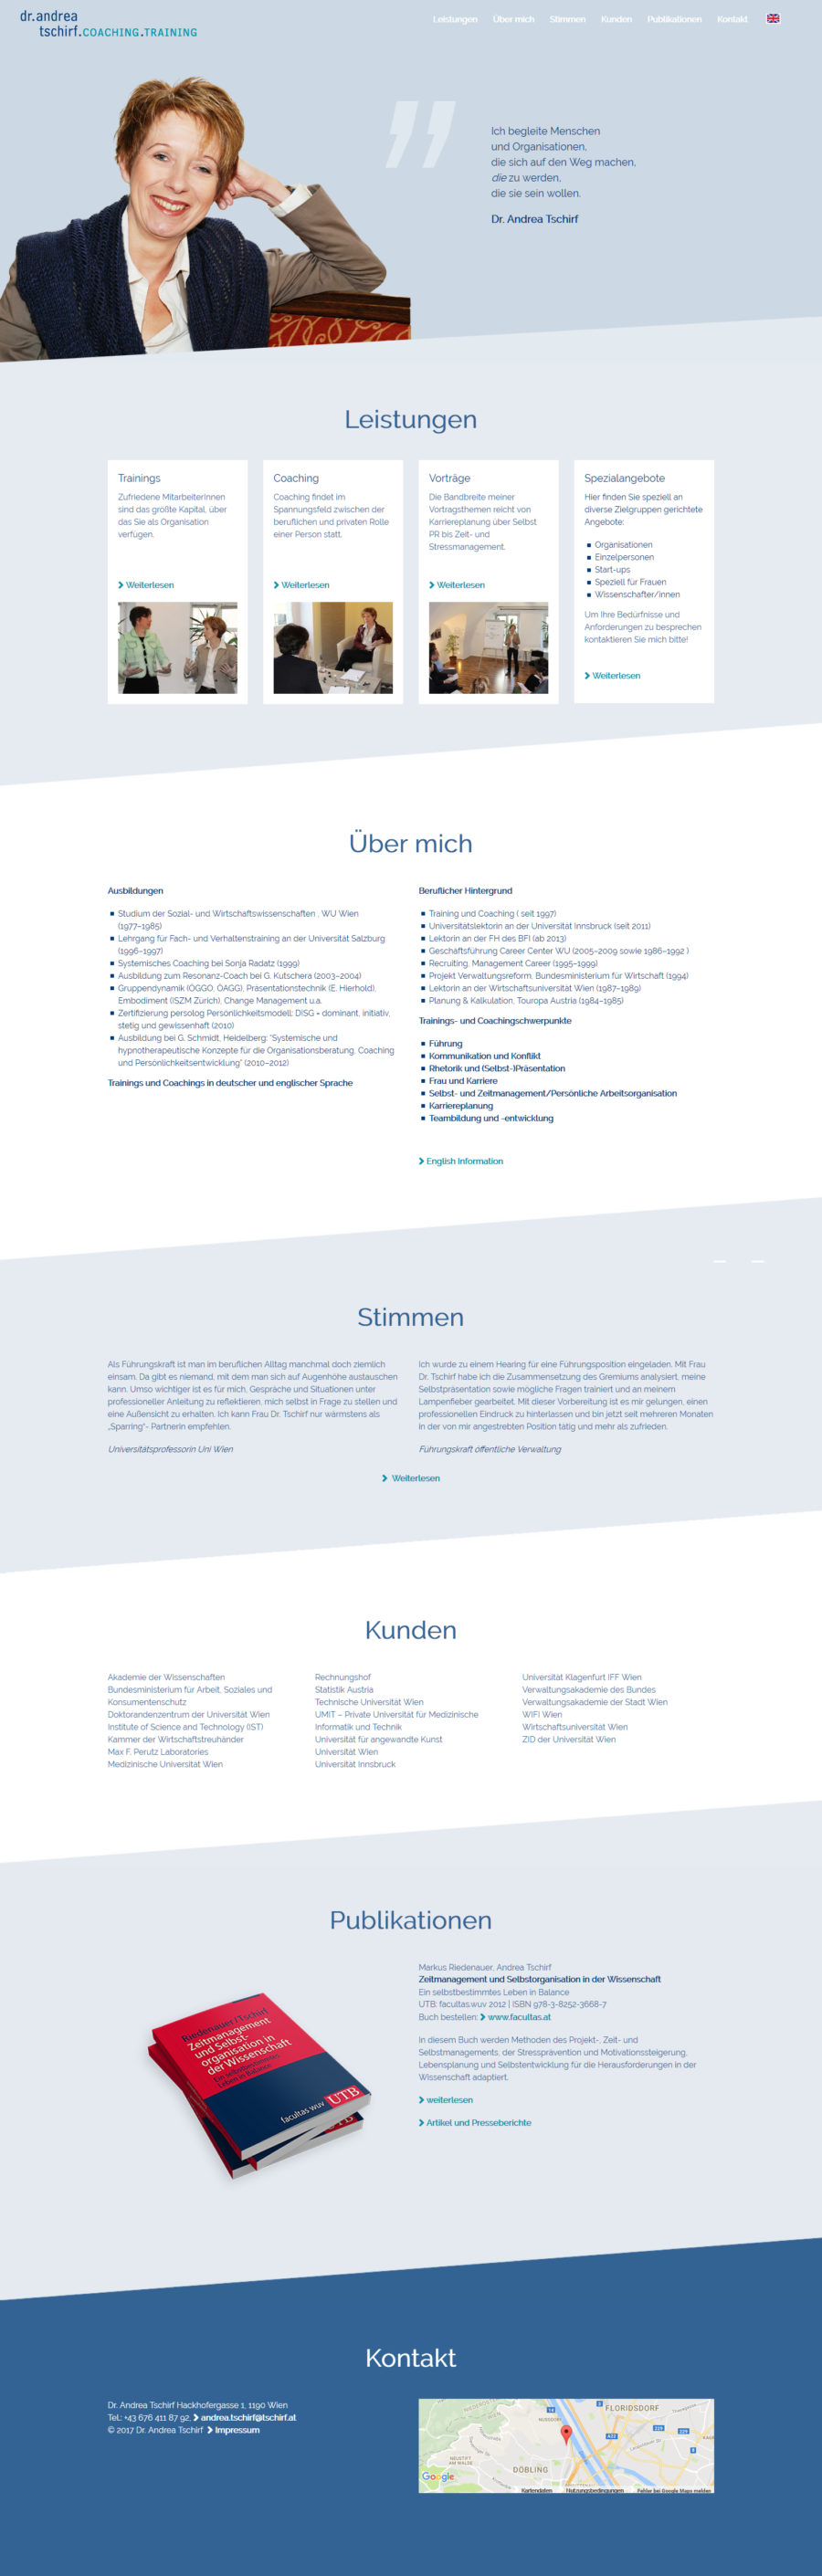 wordpress homepage wien therapeut